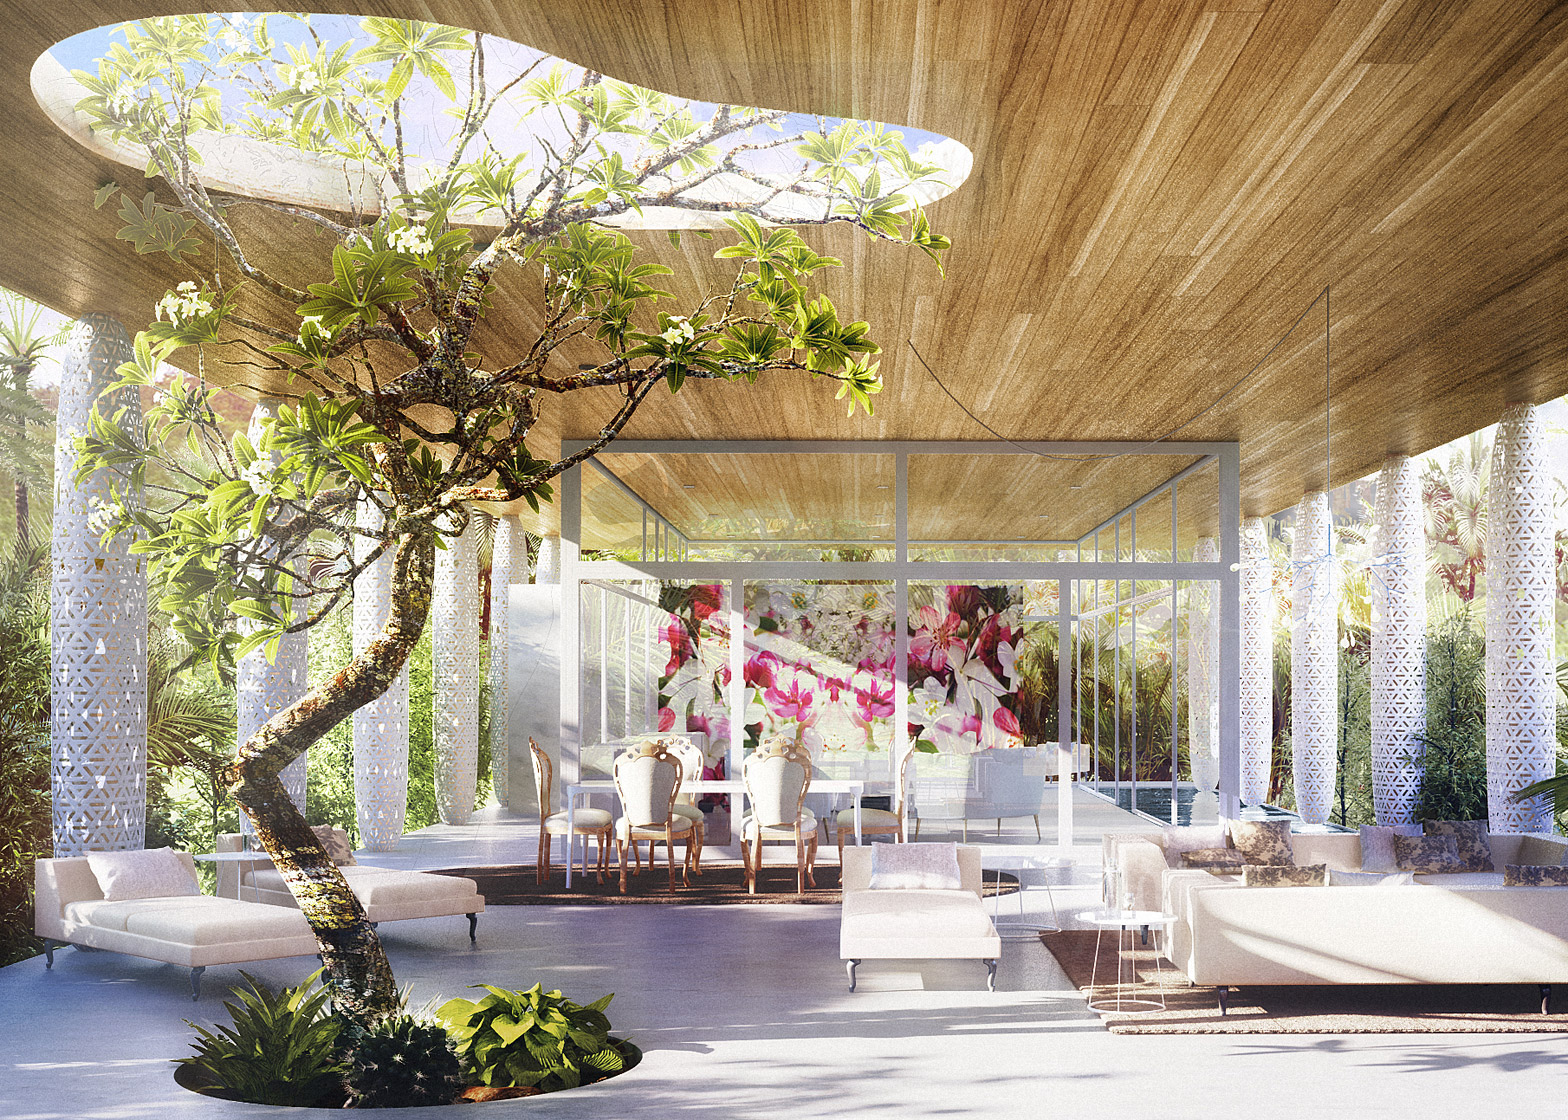 Marcel Wanders' prefabricated pavilion for Revolution Precrafted